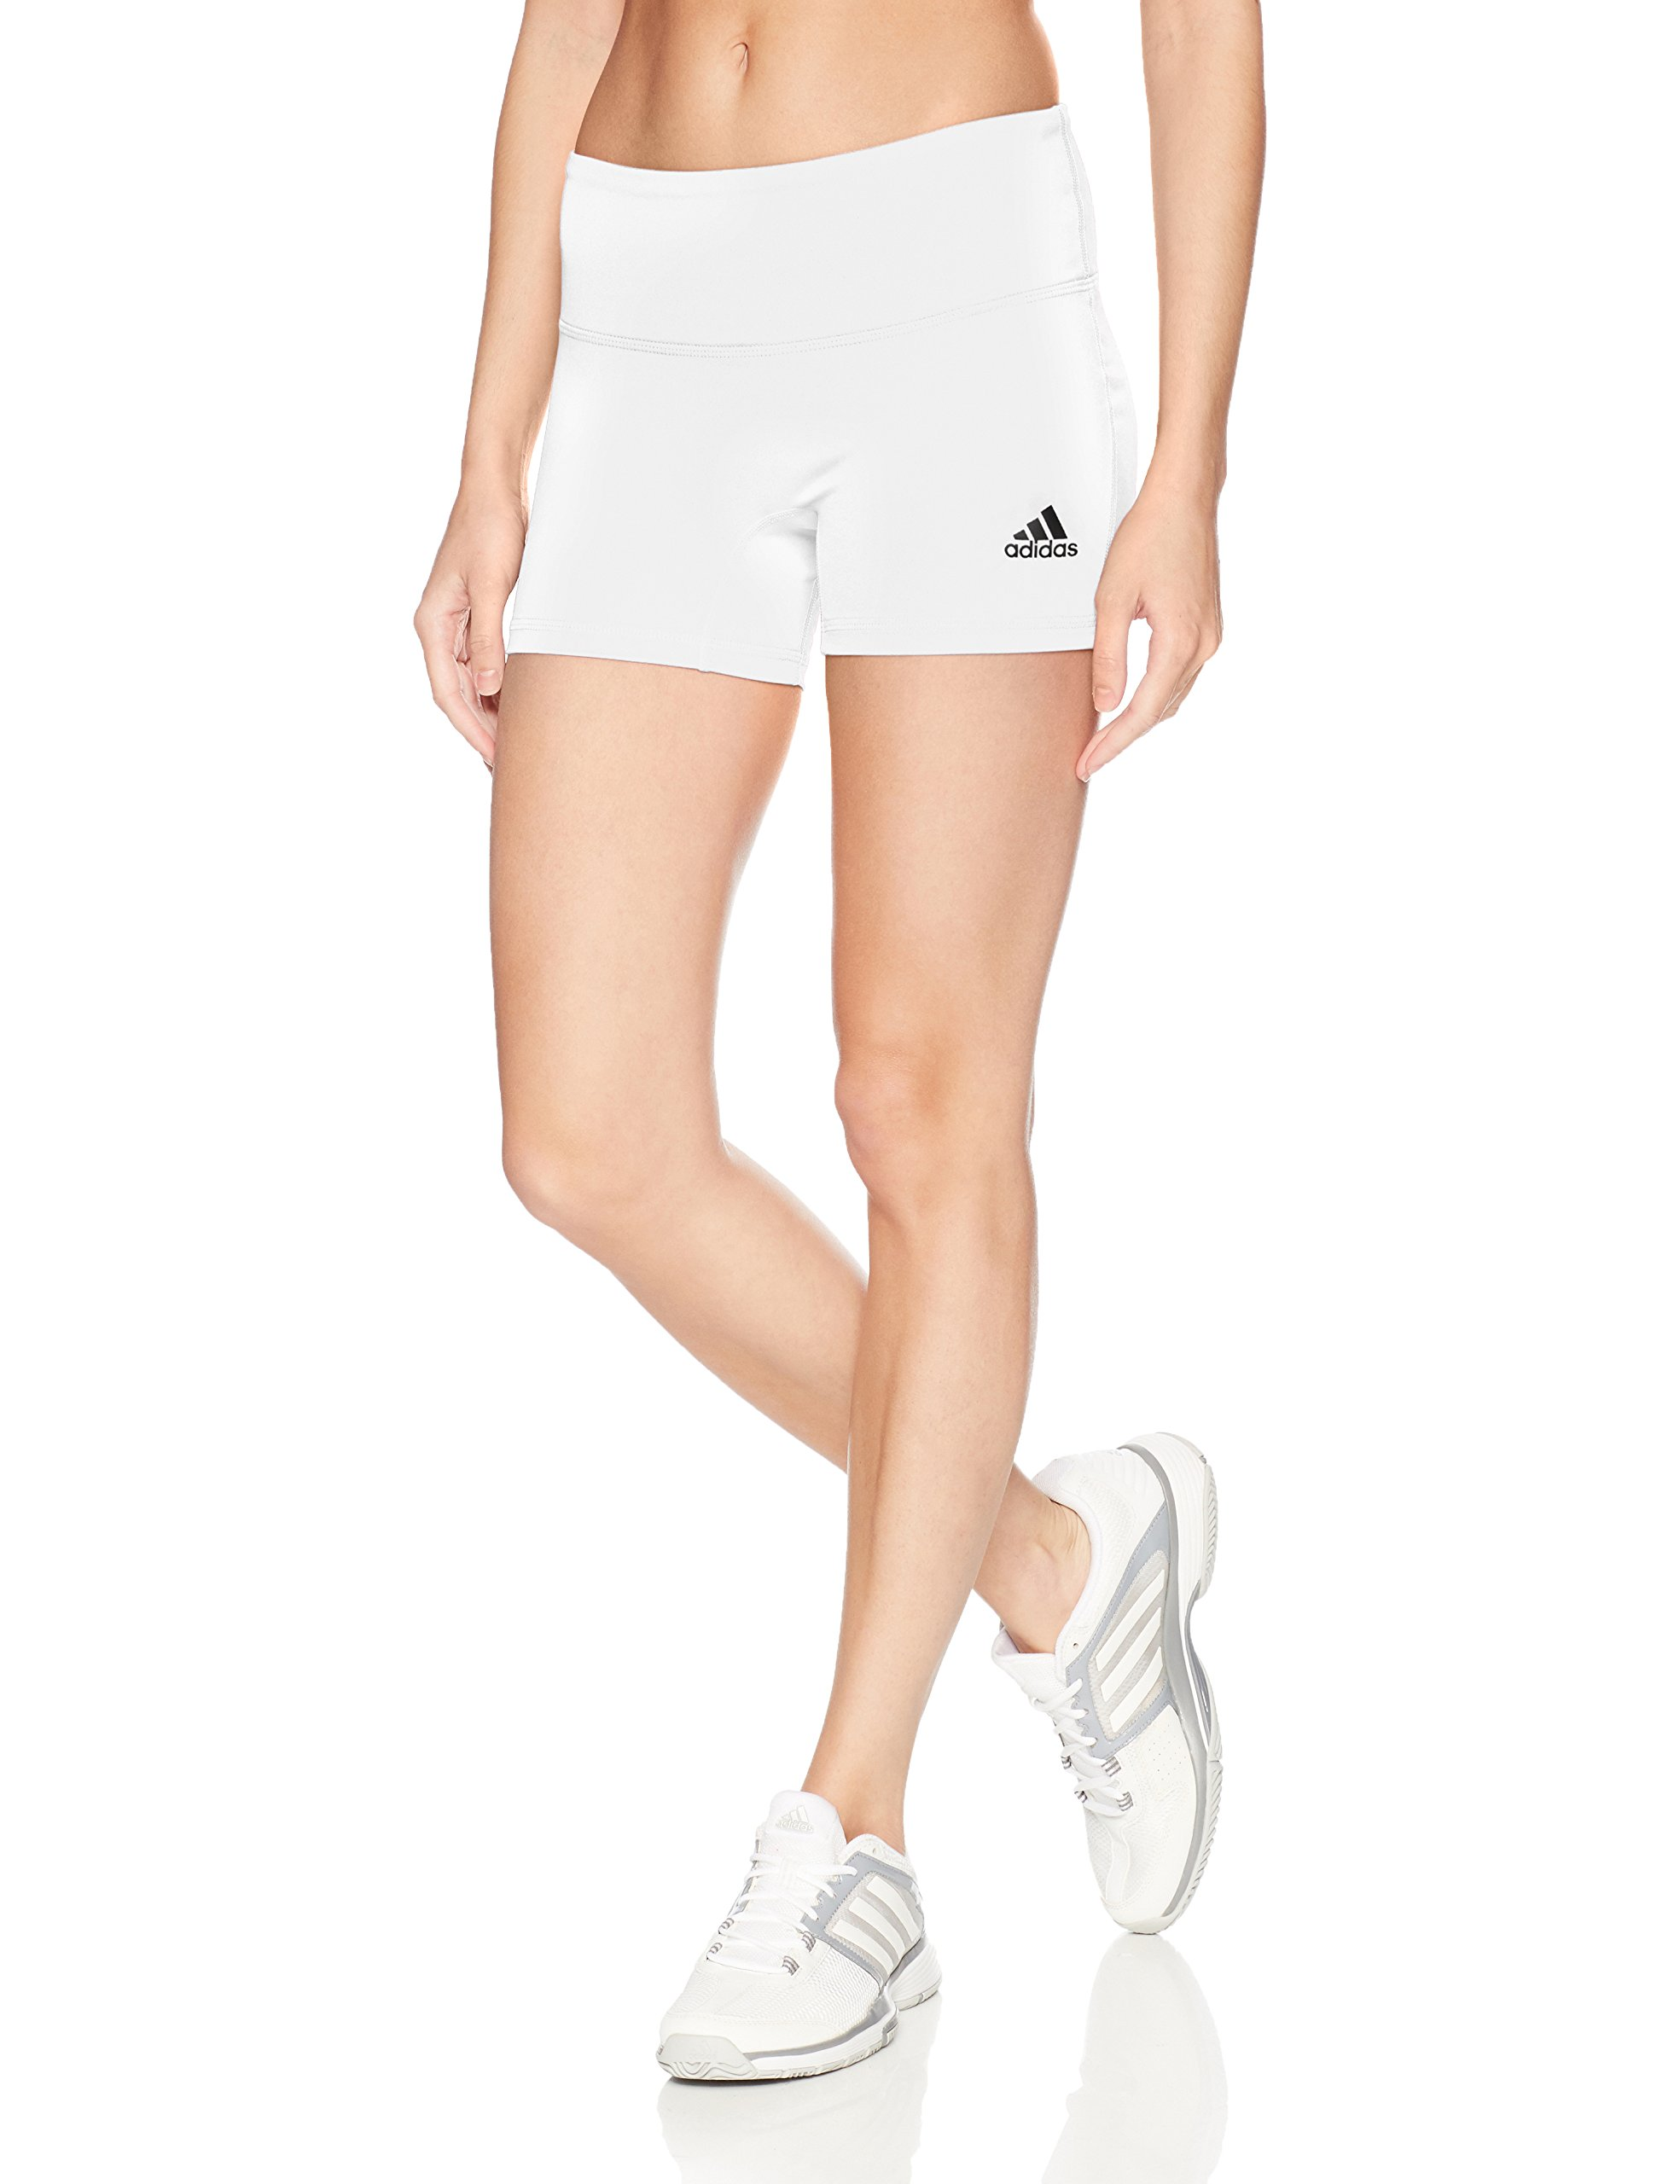 adidas Women's 4 Inch Short Tight, White, X-Small by adidas